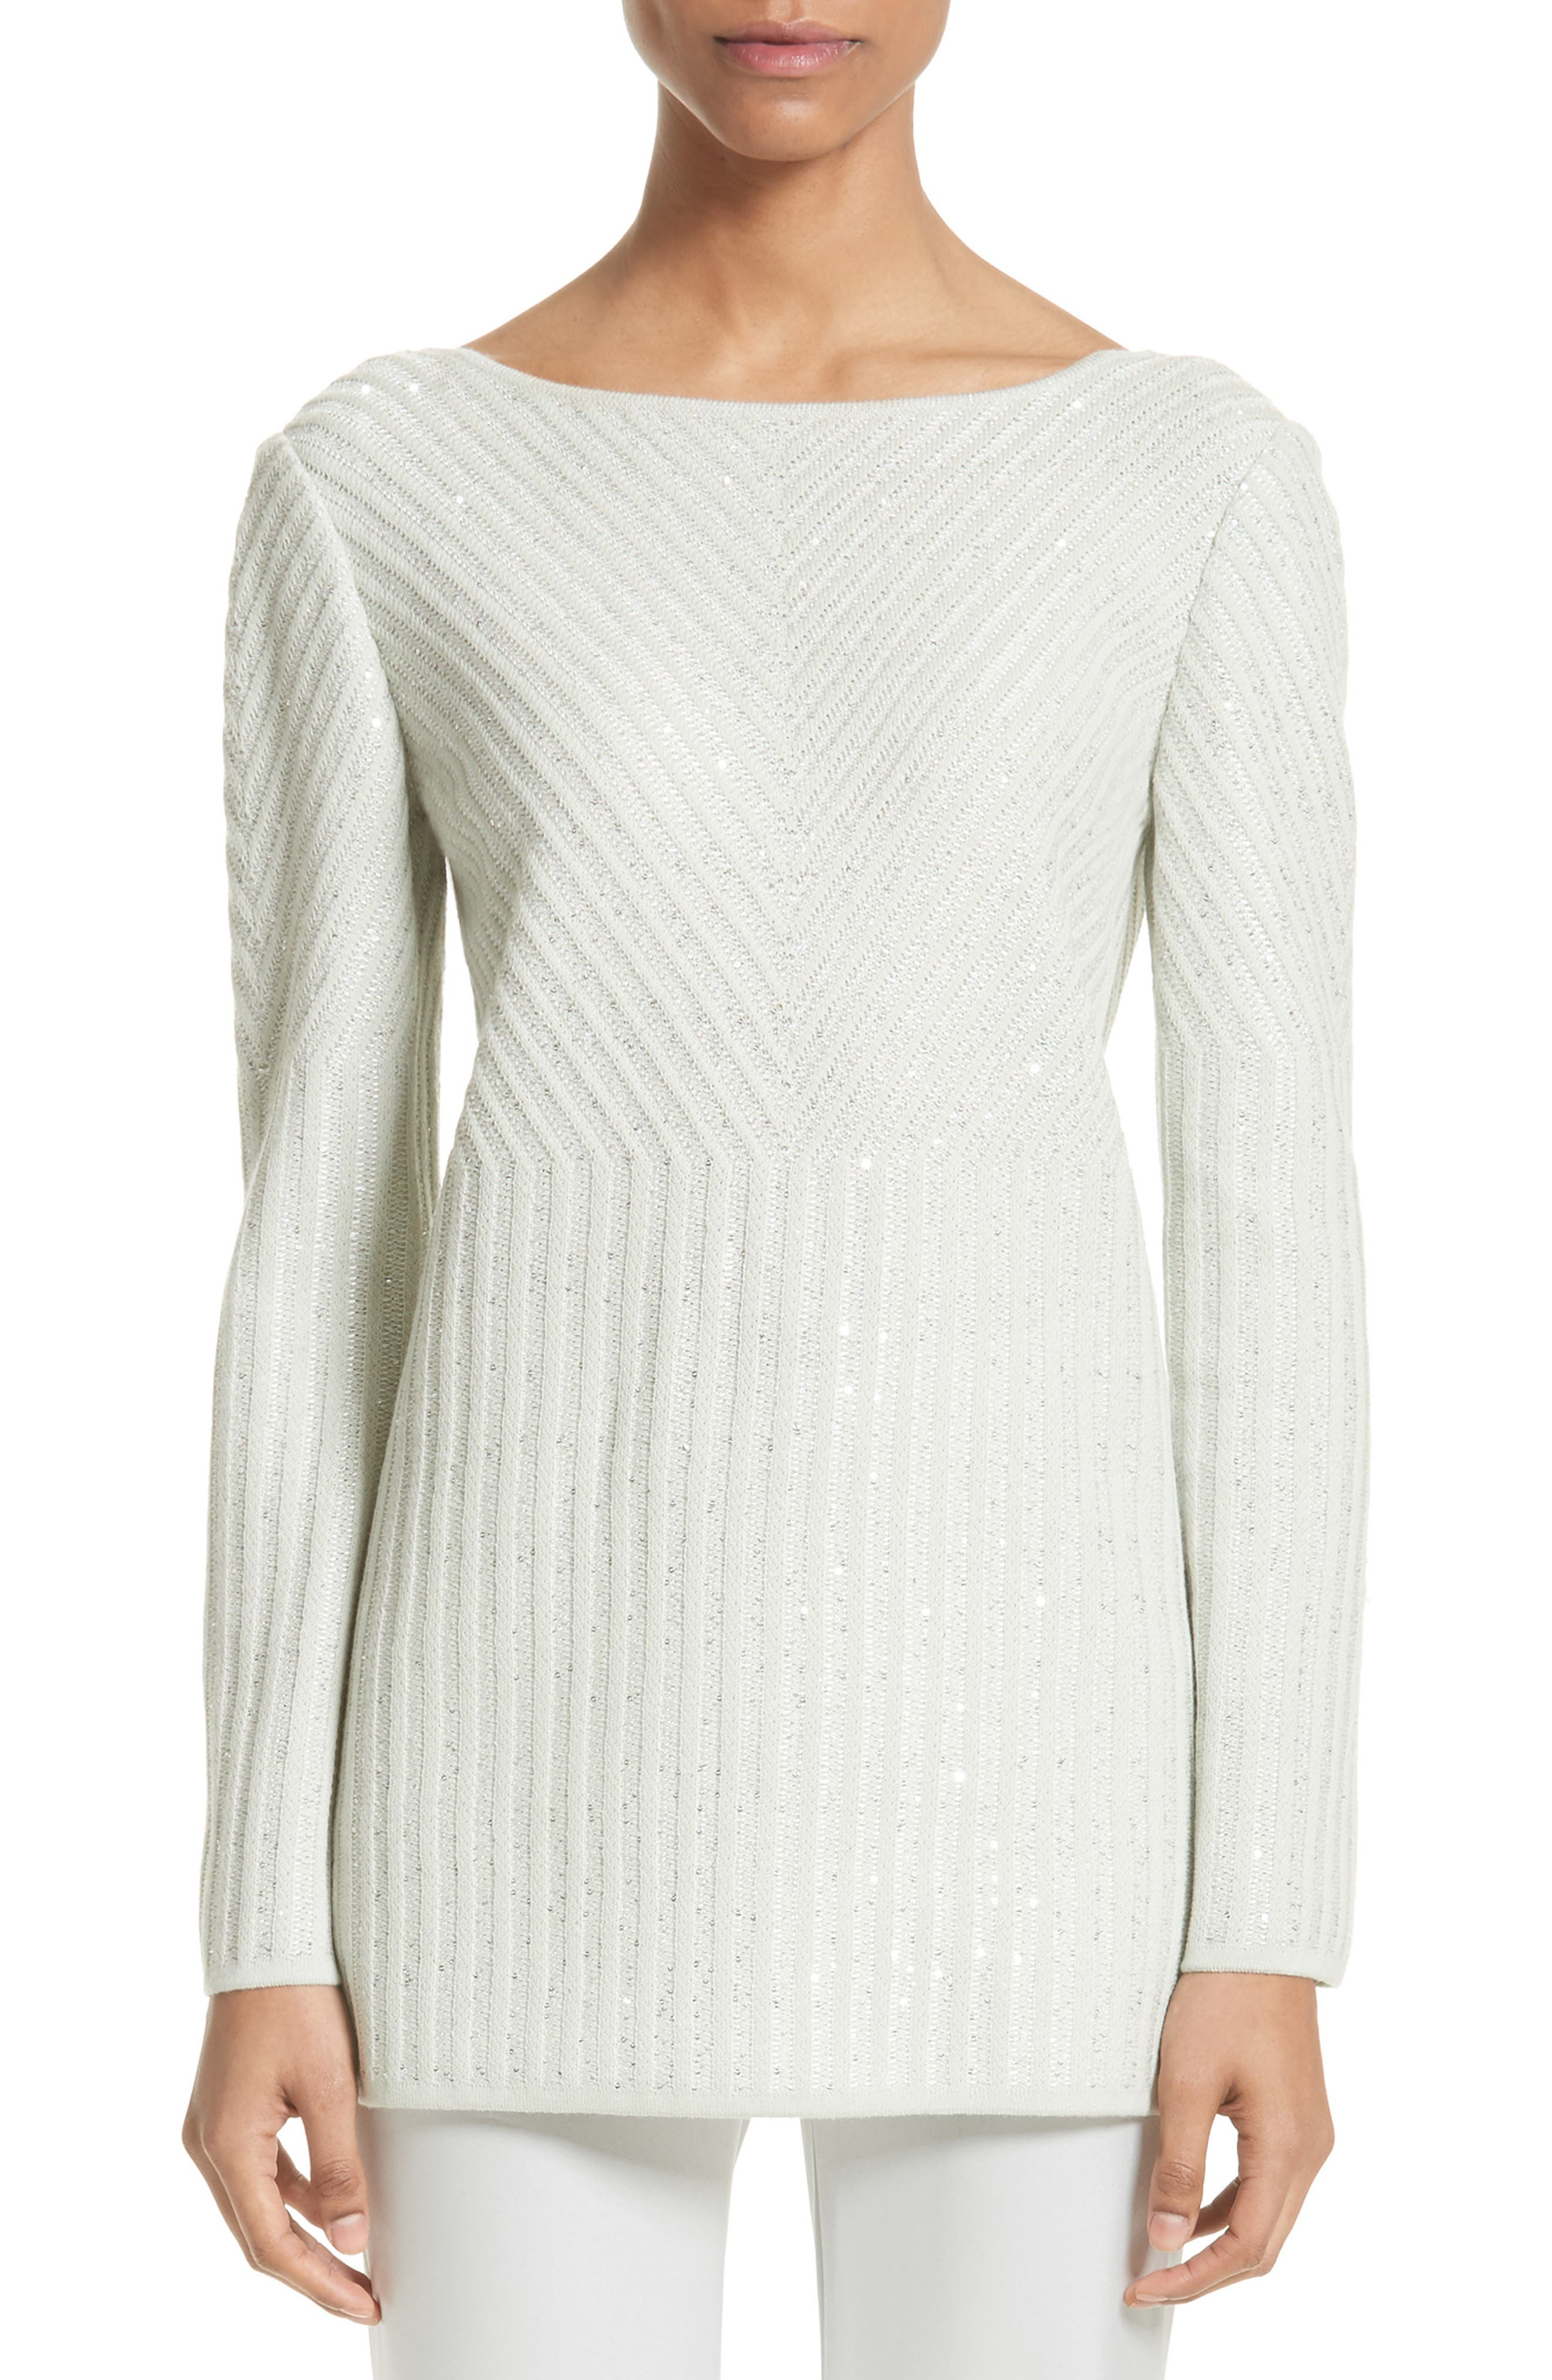 St. John Collection Sparkle Engineered Rib Sweater